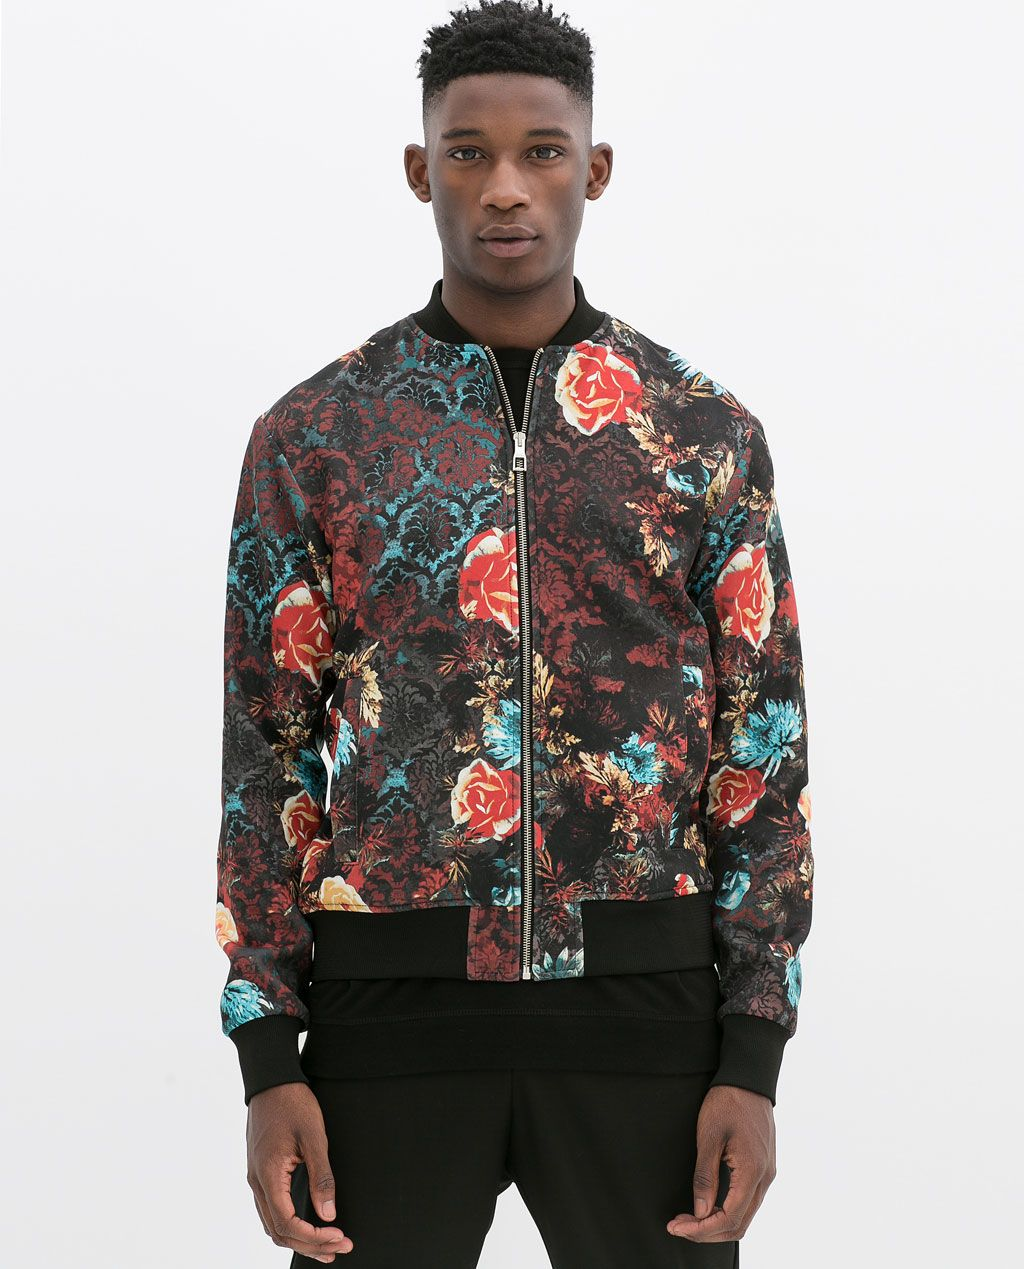 2d7f442bf 89.90 FLOWER BOMBER JACKET from Zara | Prints in 2019 | Zara bomber ...